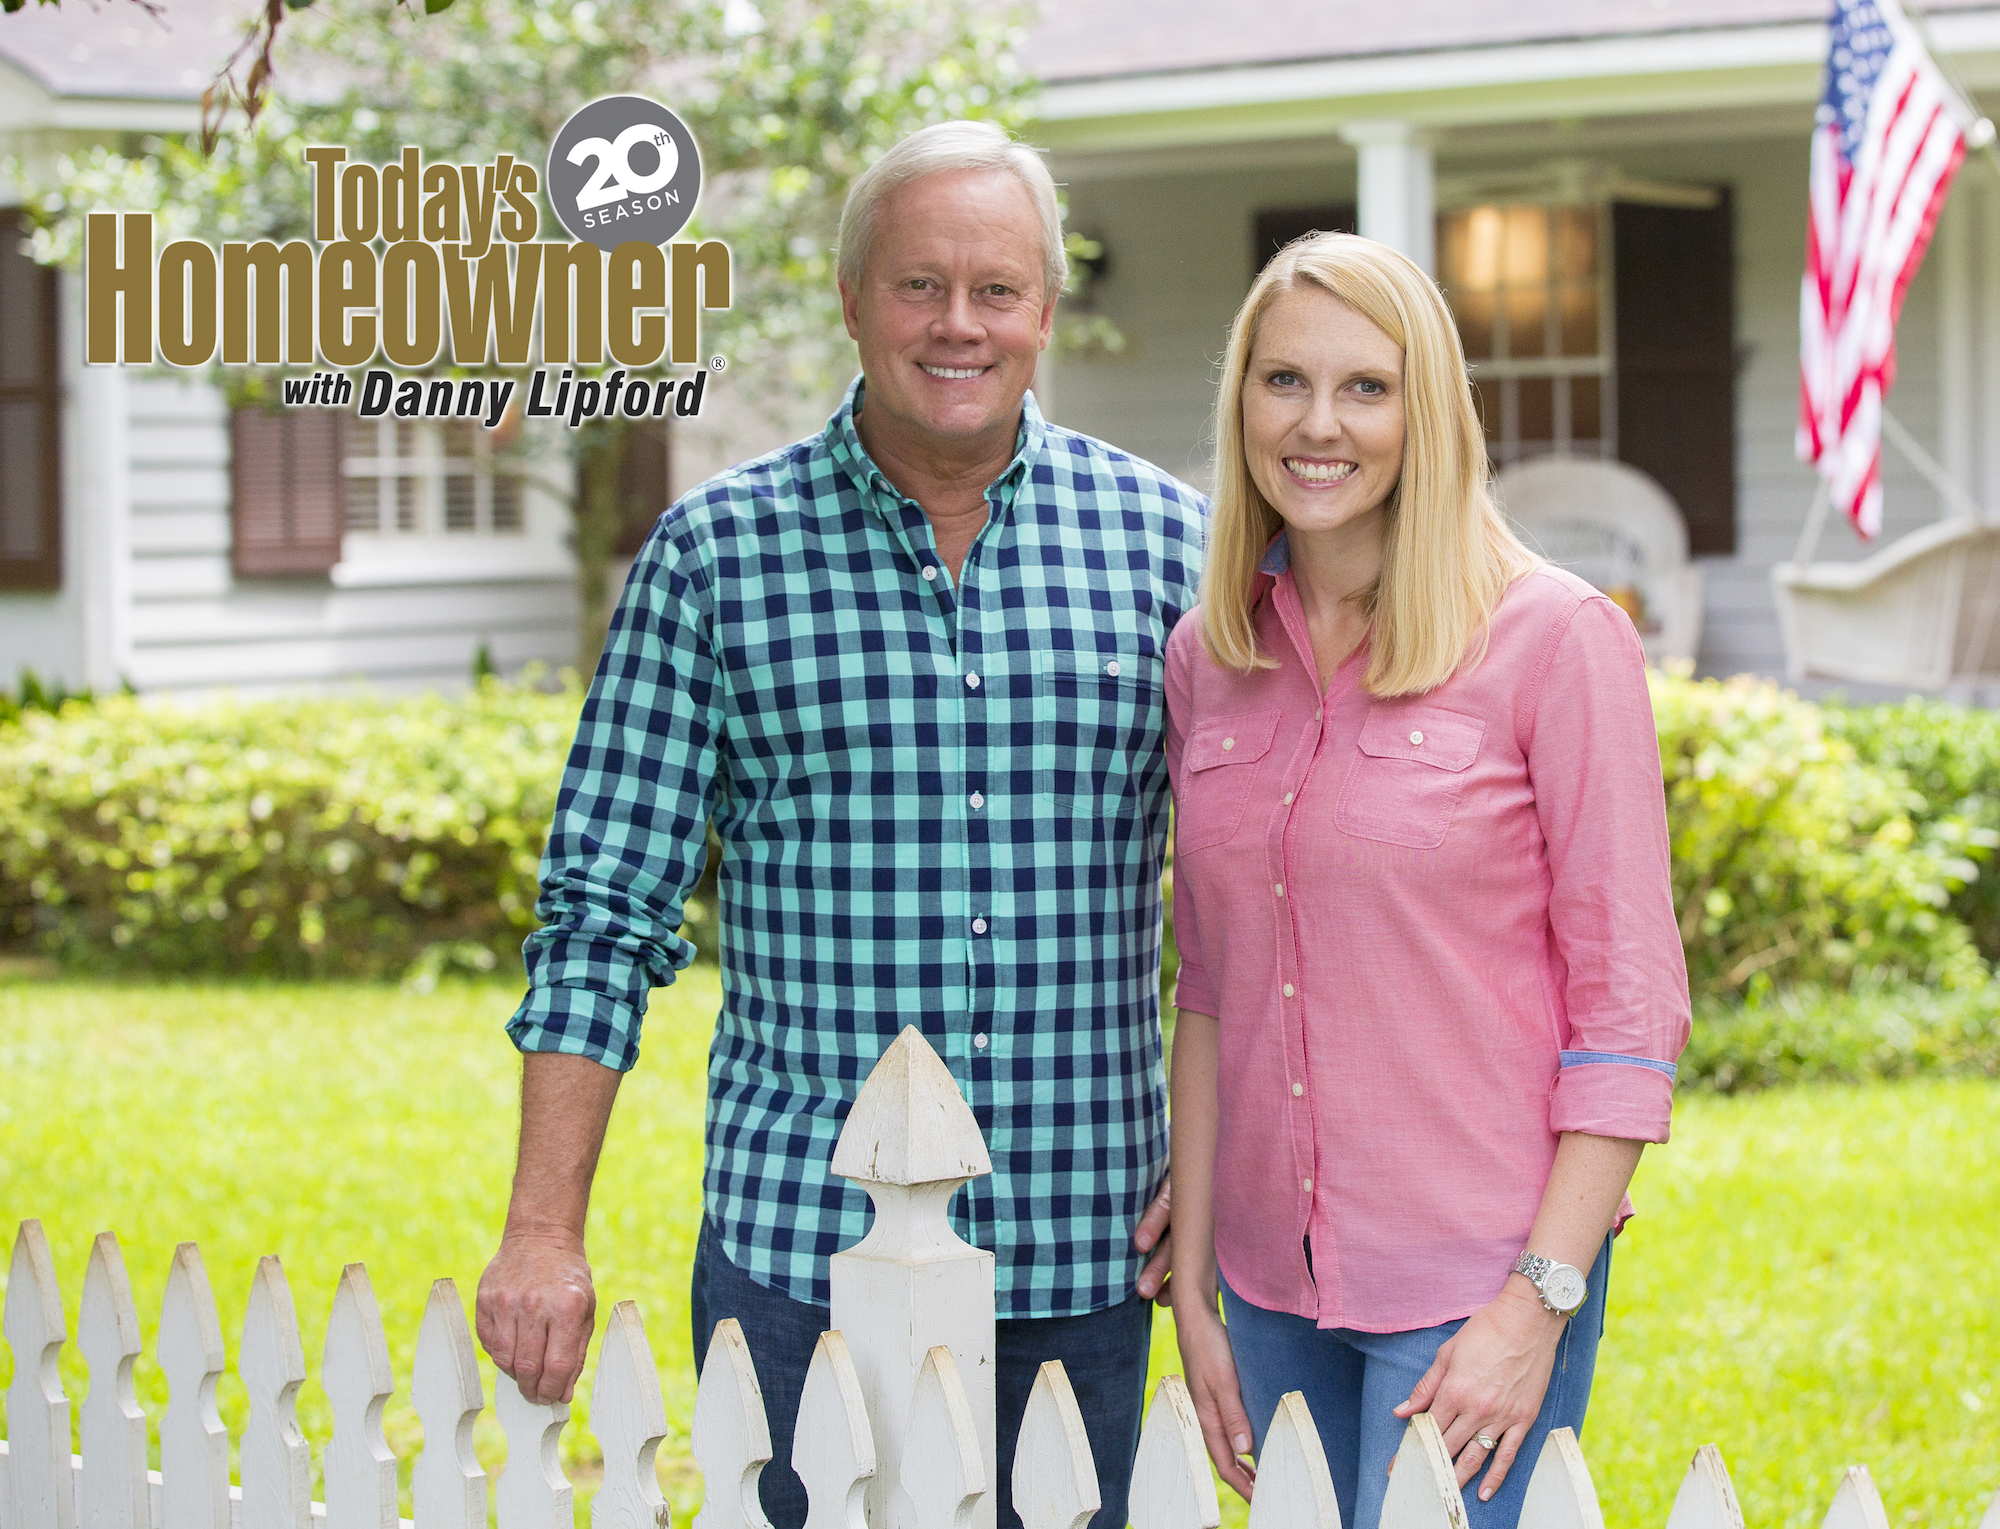 Host of Today's Homeowner TV, Danny Lipford, Visits the ...